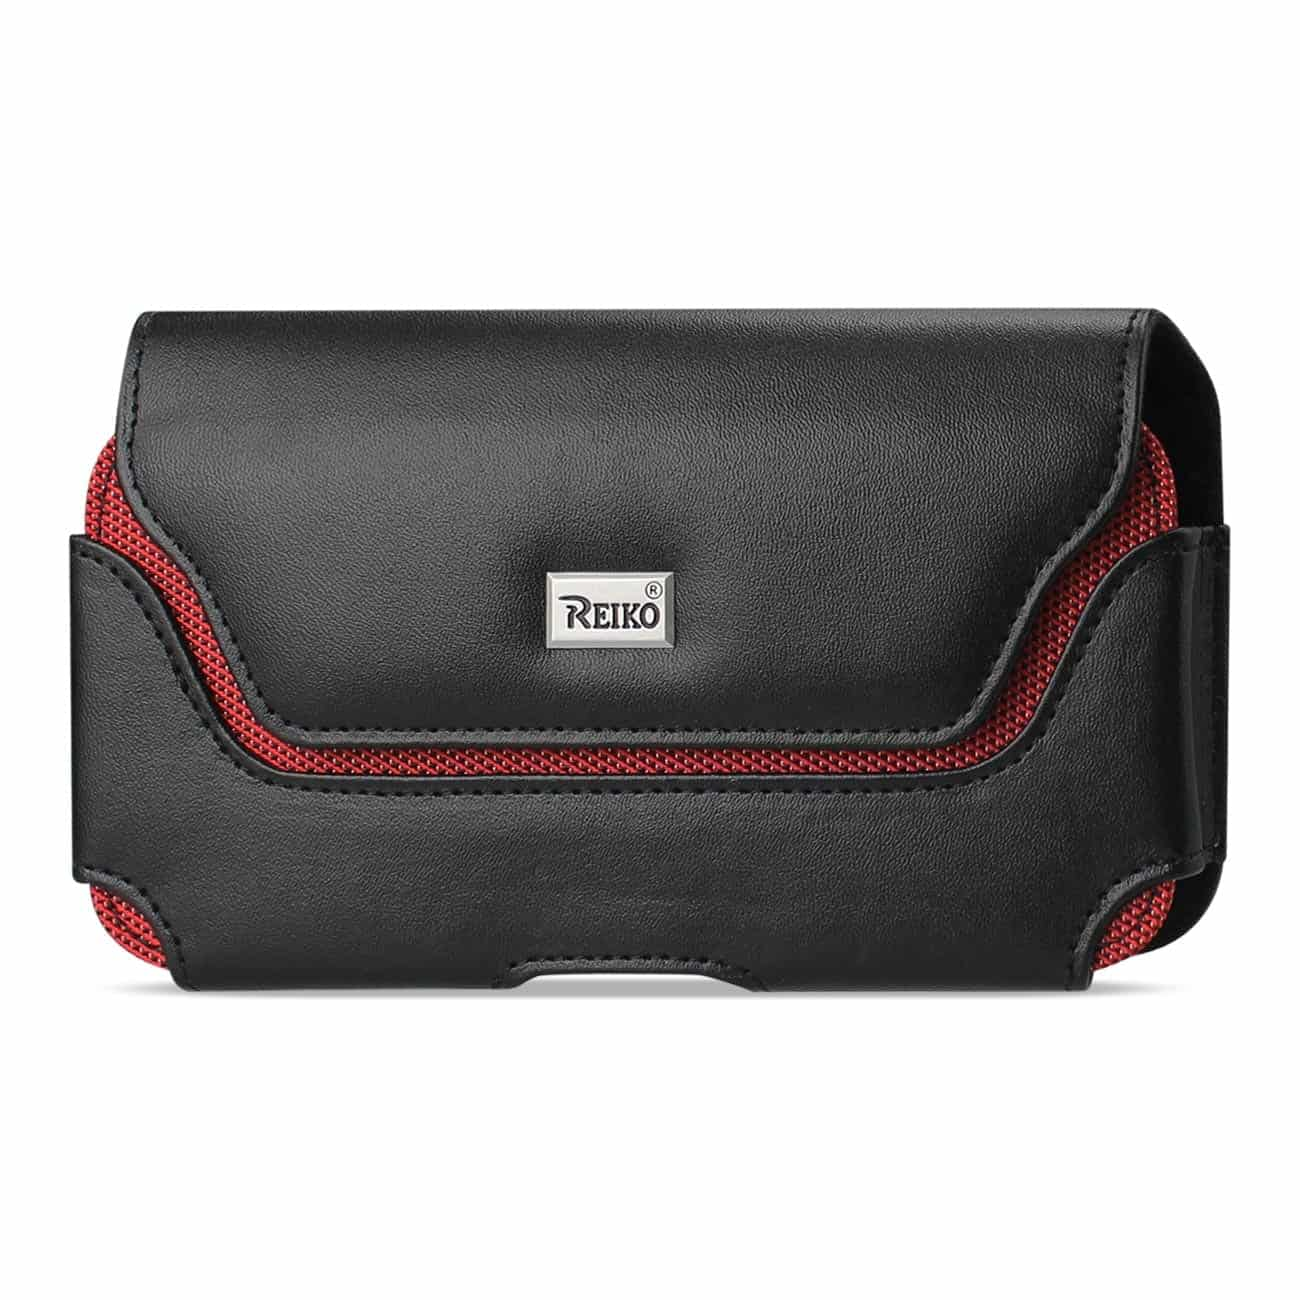 Horizontal Leather Pouch With Red Bee Nest Interior In Black (5.8X3.2X0.7 Inches)